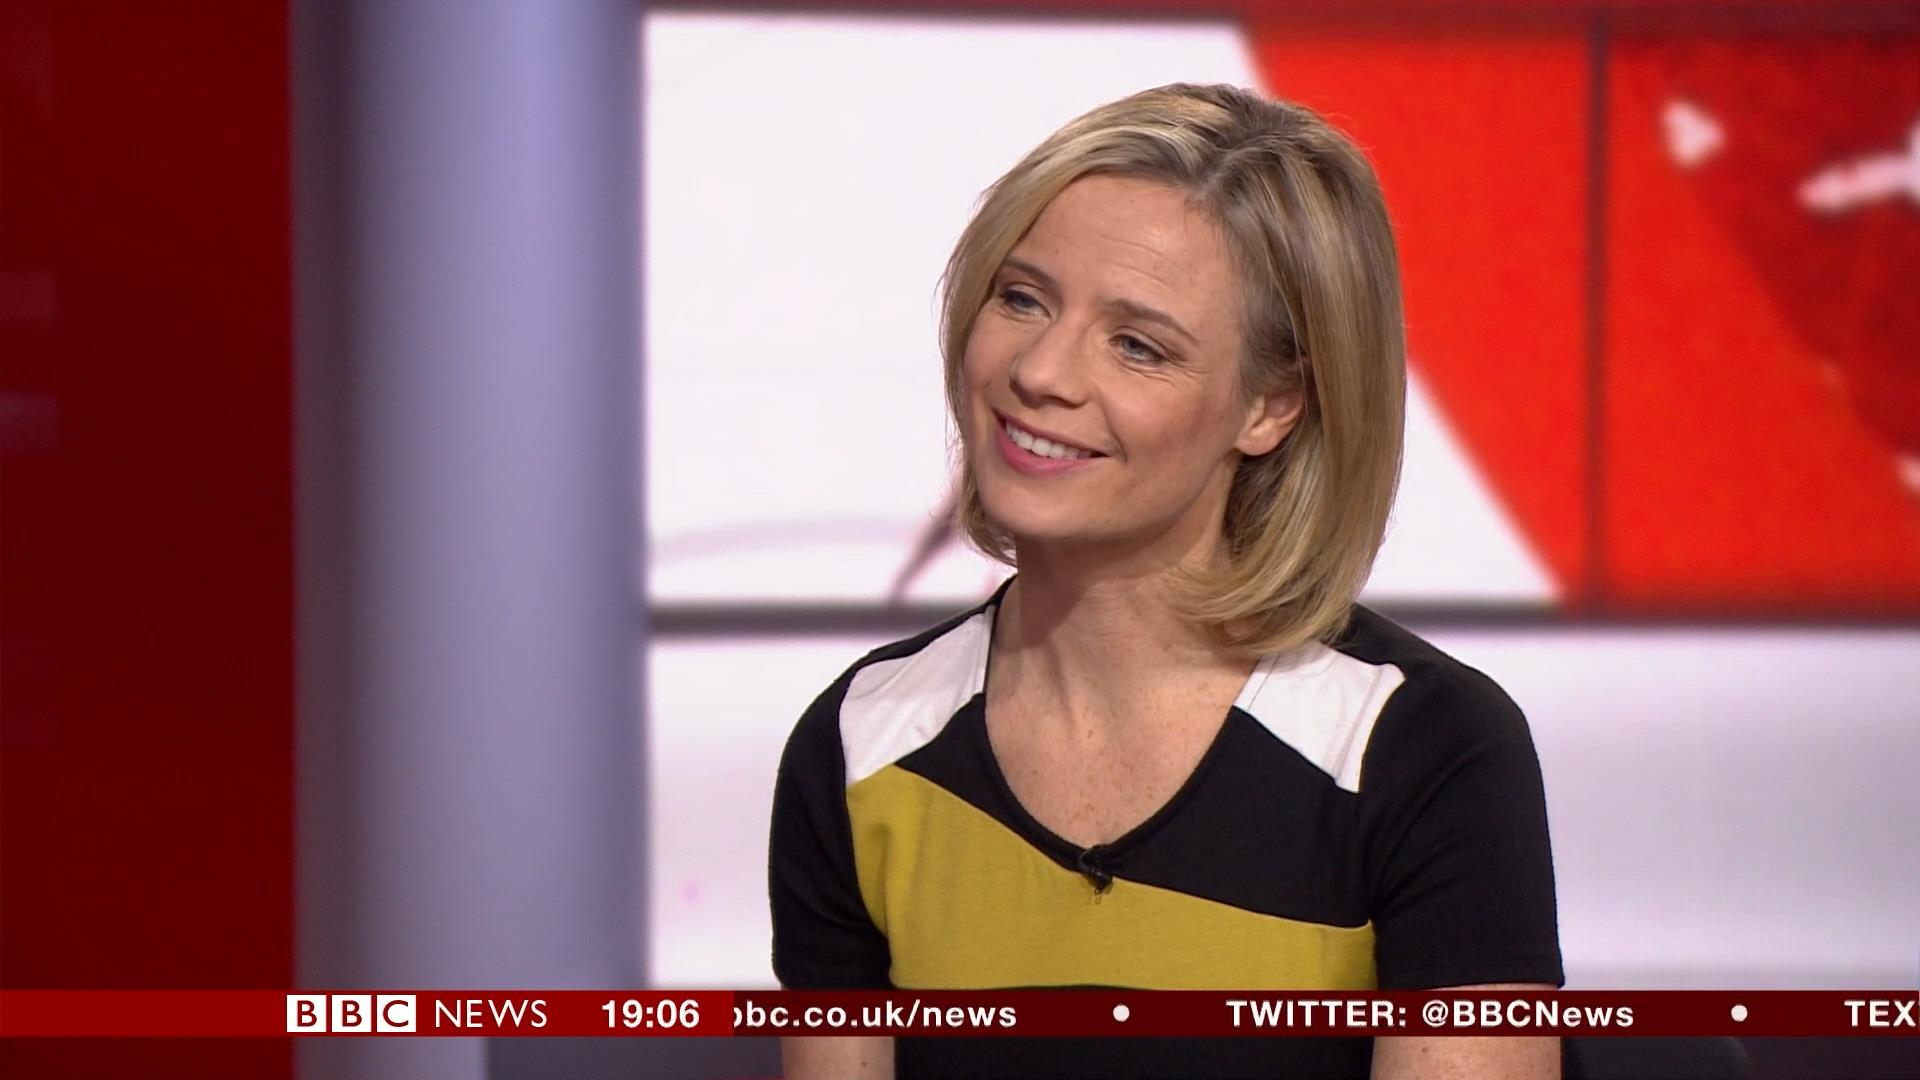 Sarah Keith-Lucas - BBC Weather Presenter (4)